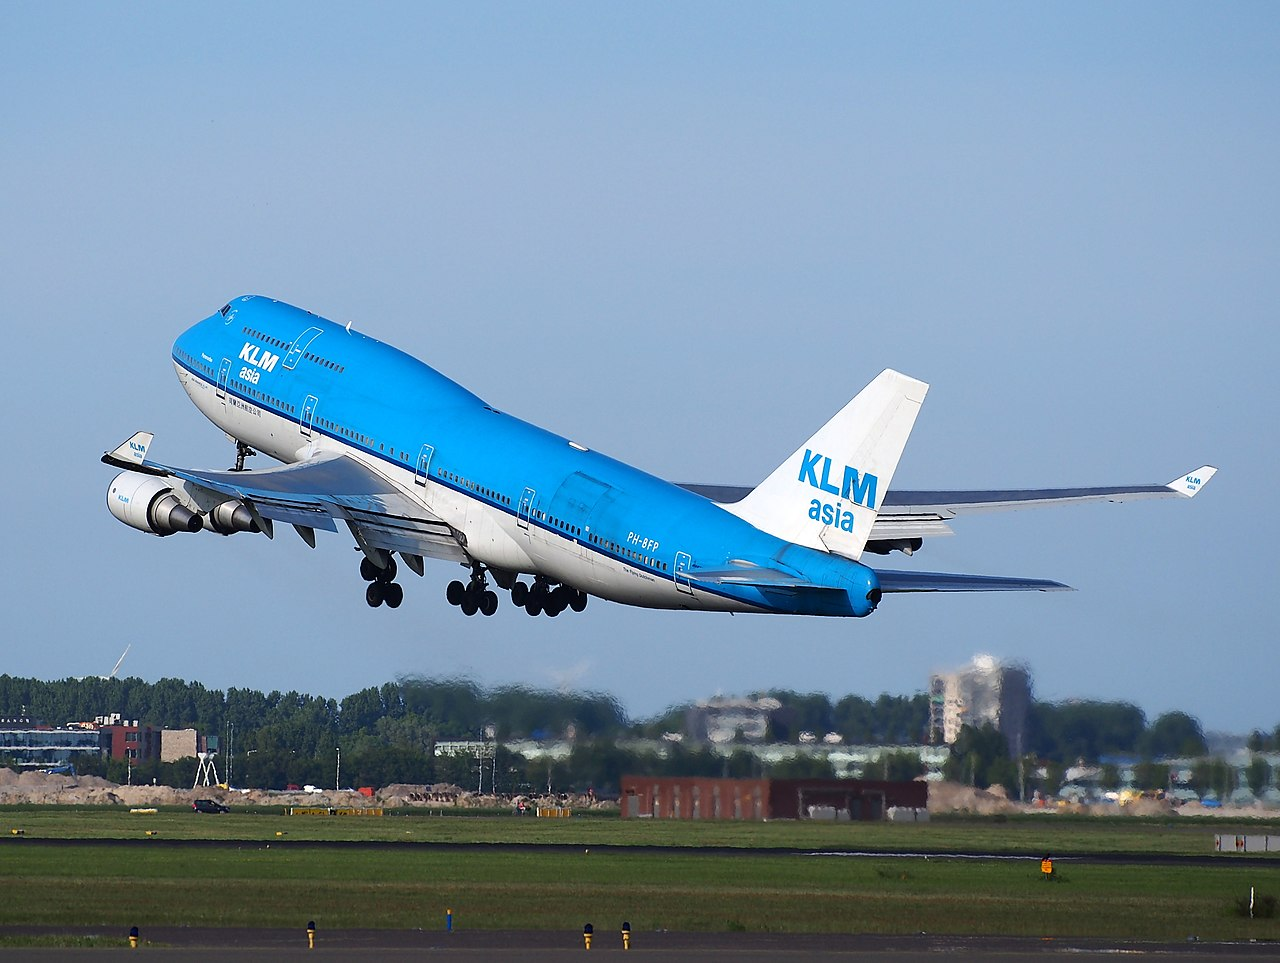 filephbfp klm boeing 747400 takeoff from schiphol ams